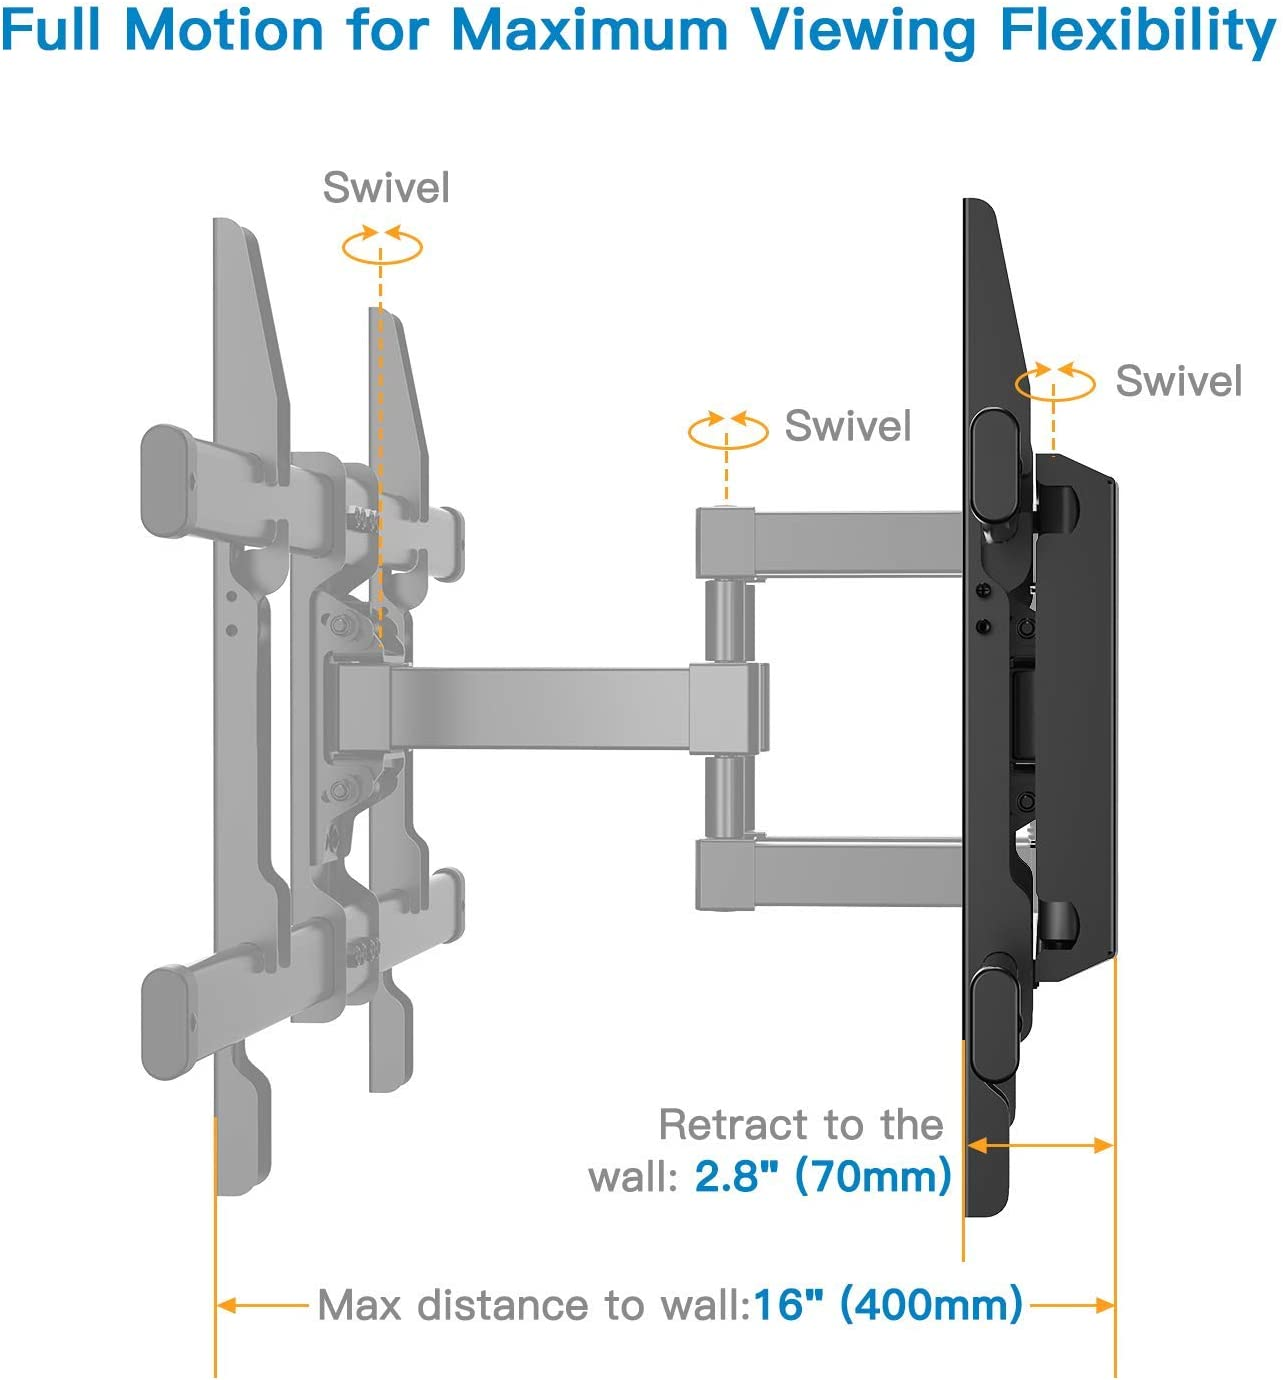 Perlesmith TV Wall Mount Bracket Full Motion Dual Articulating Arm for 37-70 Inch LED, LCD, OLED, Flat Screen, Plasma TVs up to 132lbs VESA 600 × 400 with Tilt, Swivel and Rotation - PSLFK1 (Renewed)